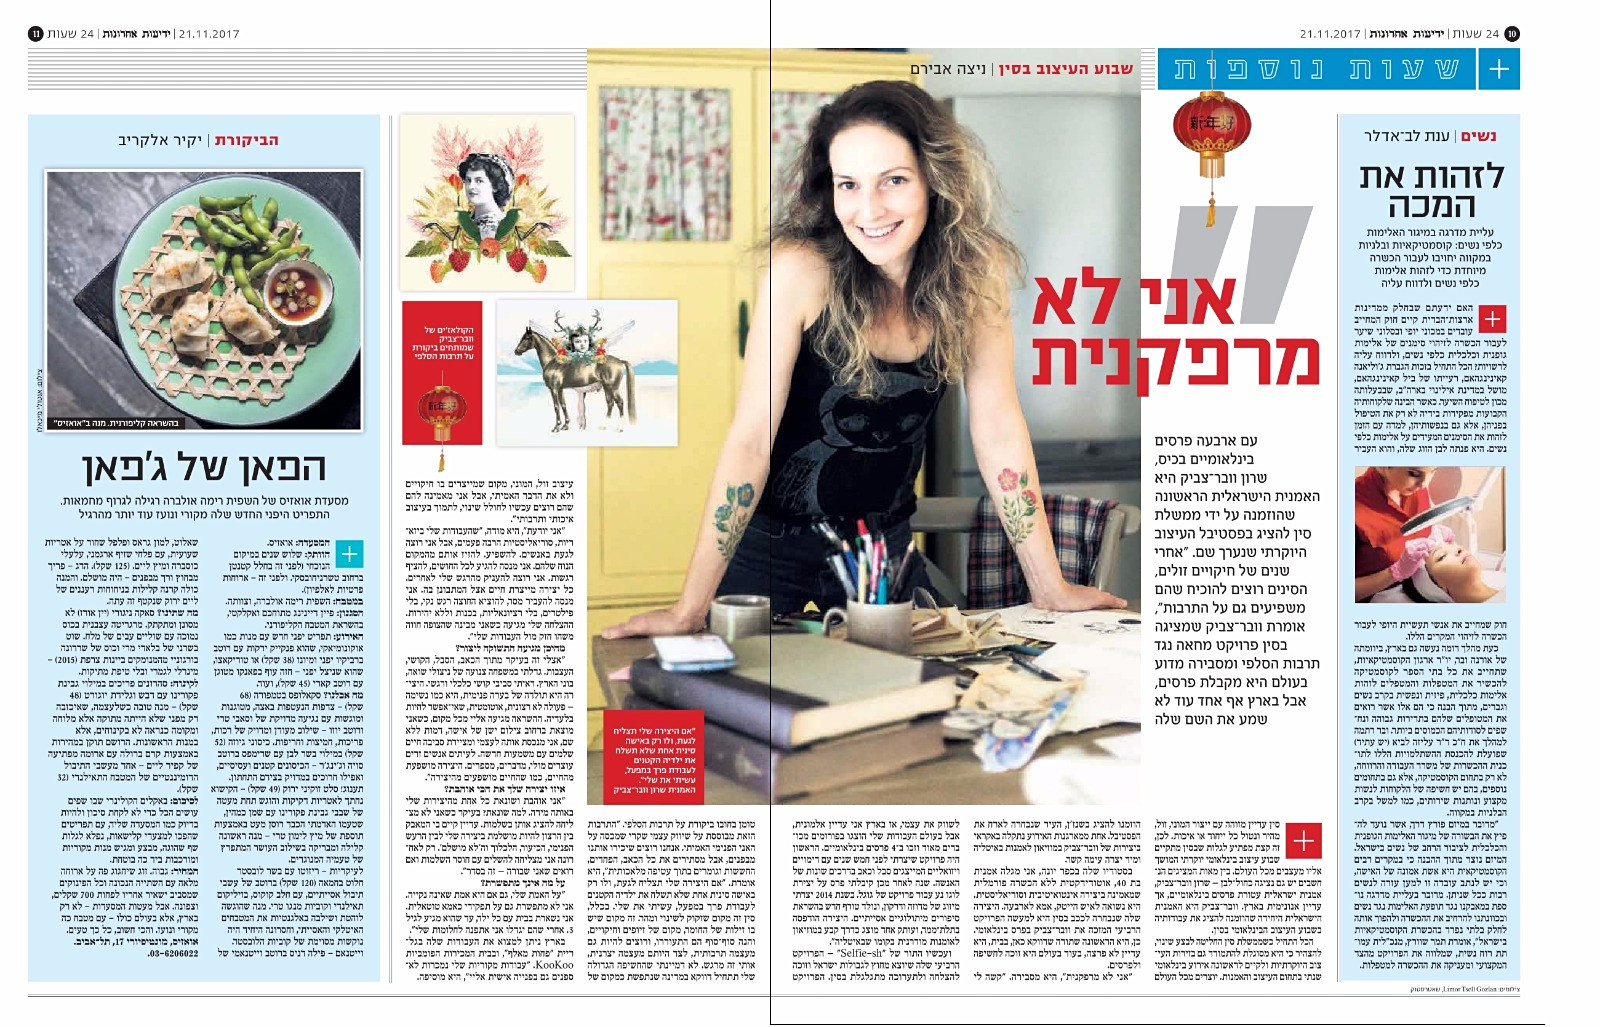 Interview on the Israeli Lead News Paper